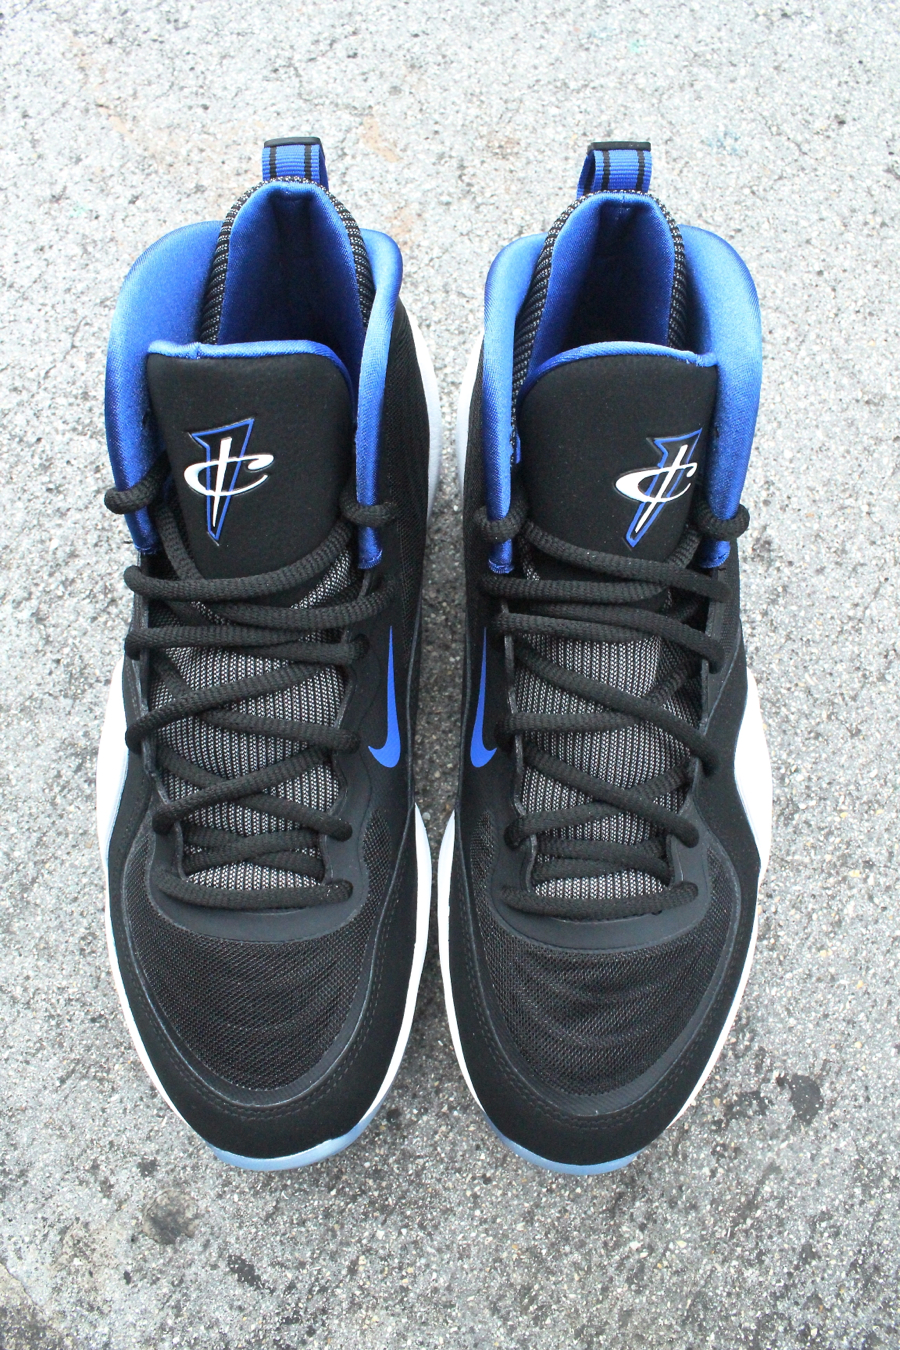 Nike Air Penny V (5) 'Orlando' at Mr. R Sports